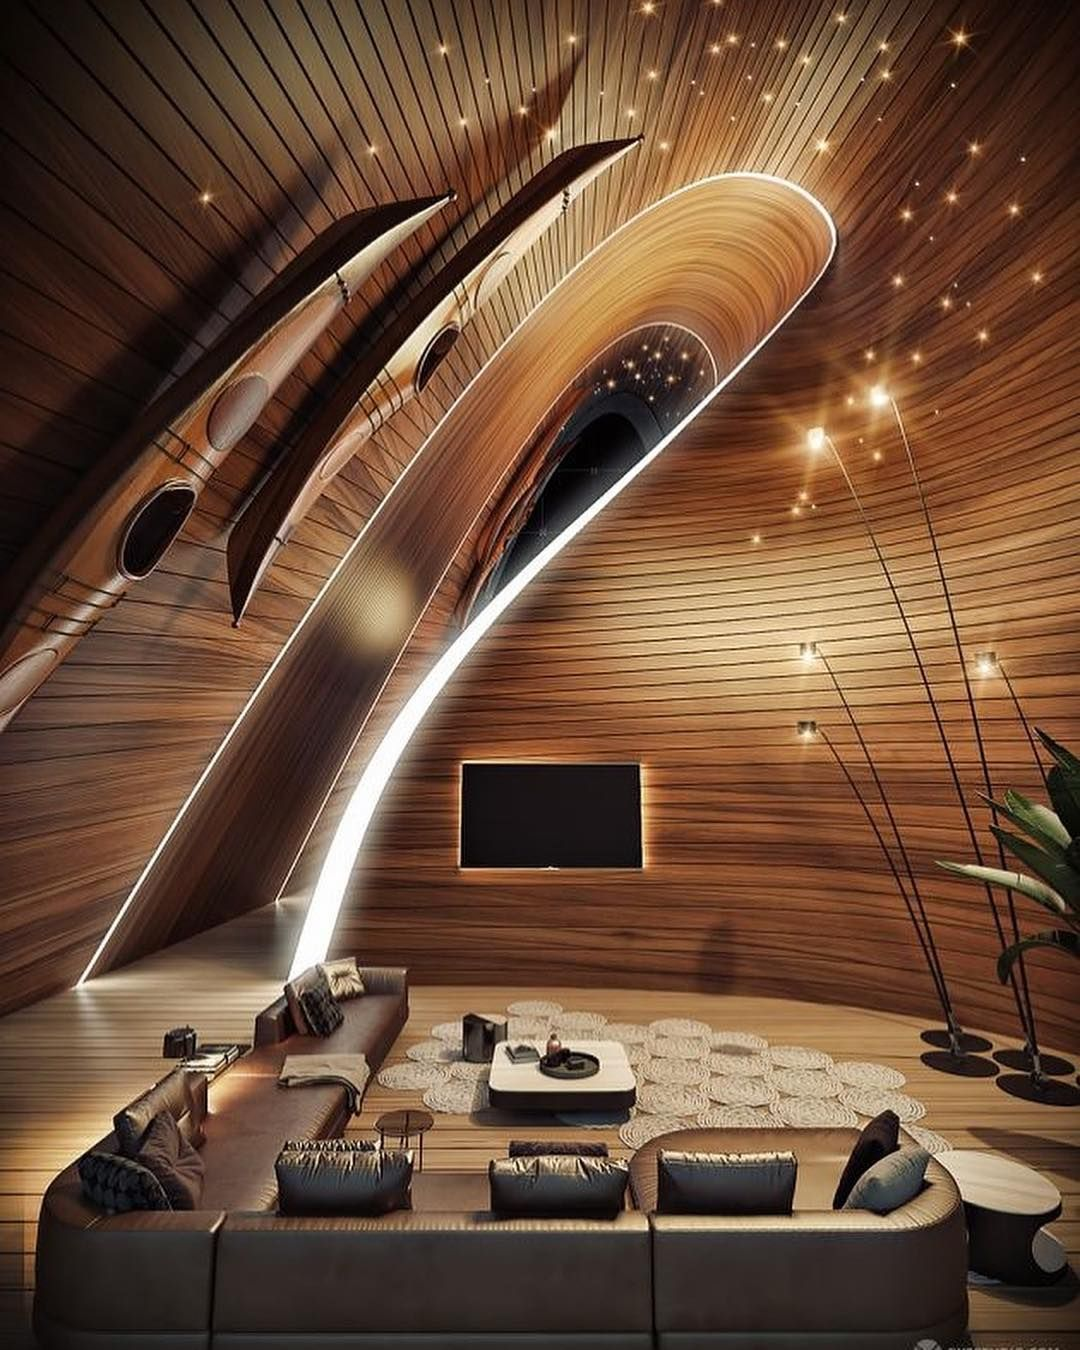 Top 23 Best Furniture Store For Home Office Best Cities For Interior Design Jobs 2018 Homestaging Sofas Holidaydecor Villa Design Modern Architecture Design Architecture